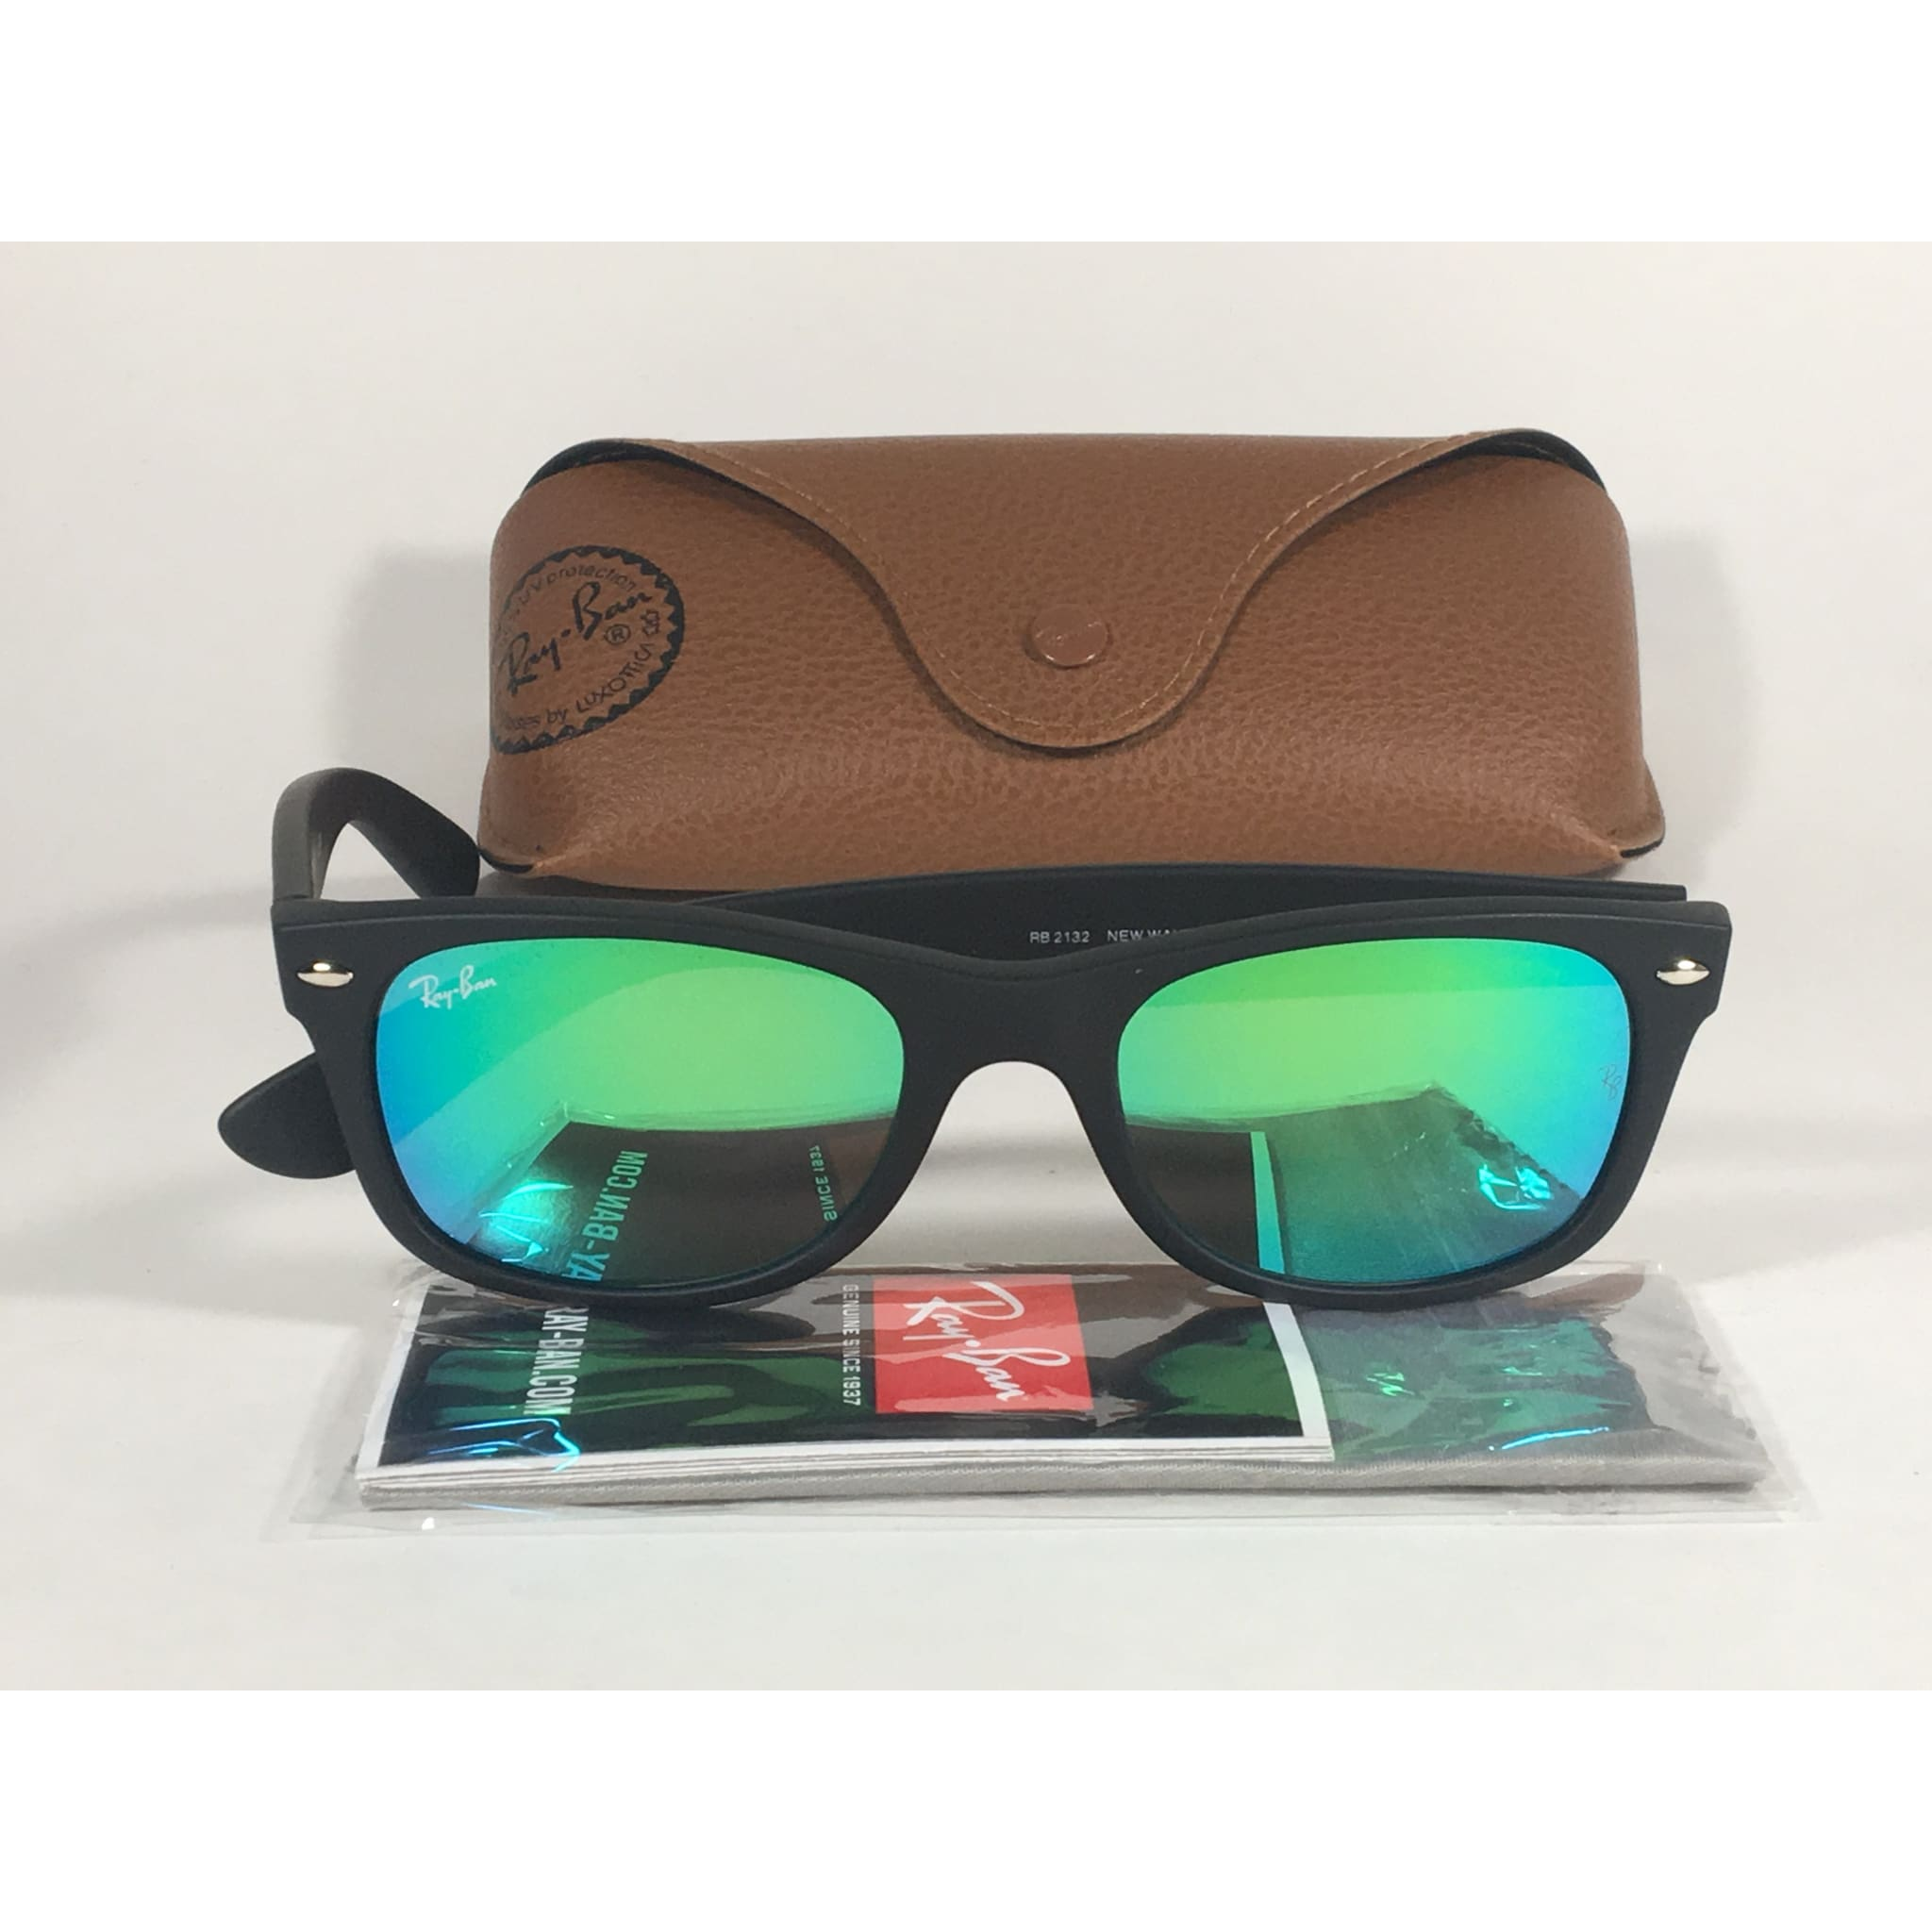 4cd16748ff Ray-Ban New Wayfarer Sunglasses RB2132 622 19 Matte Black Green Aqua Flash  Lens